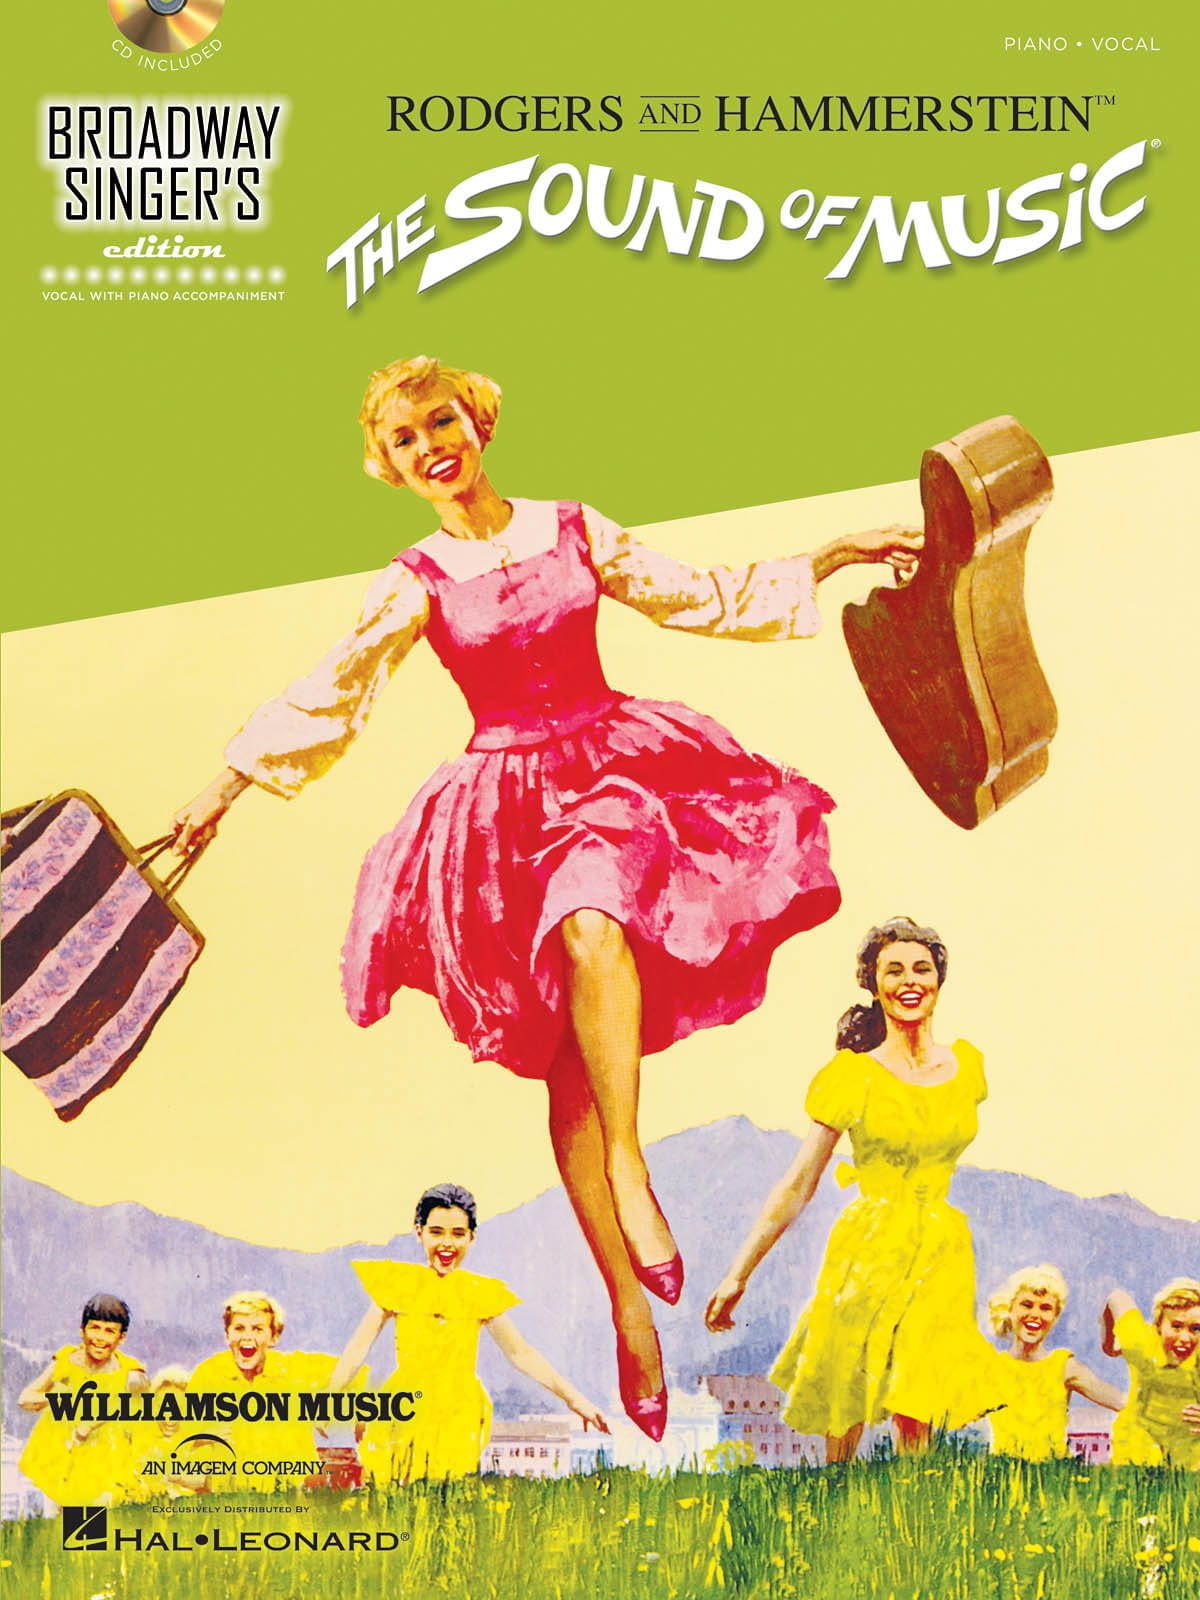 Richard Rodgers - The sound of music - Broadway singer's edition - Partition - di-arezzo.co.uk